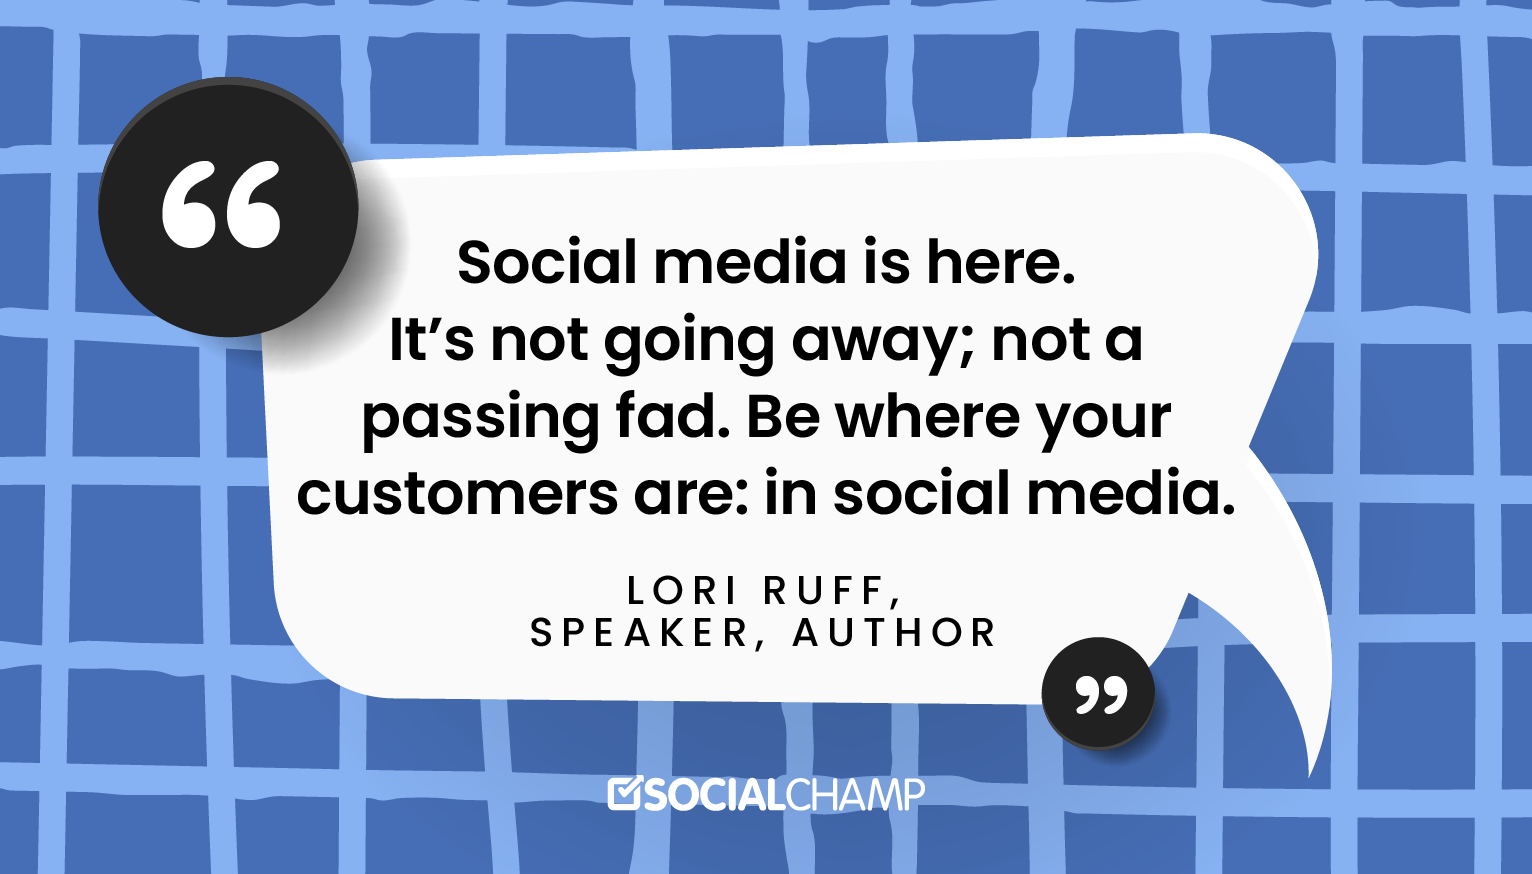 Social Media Marketing Quotes by Influencers